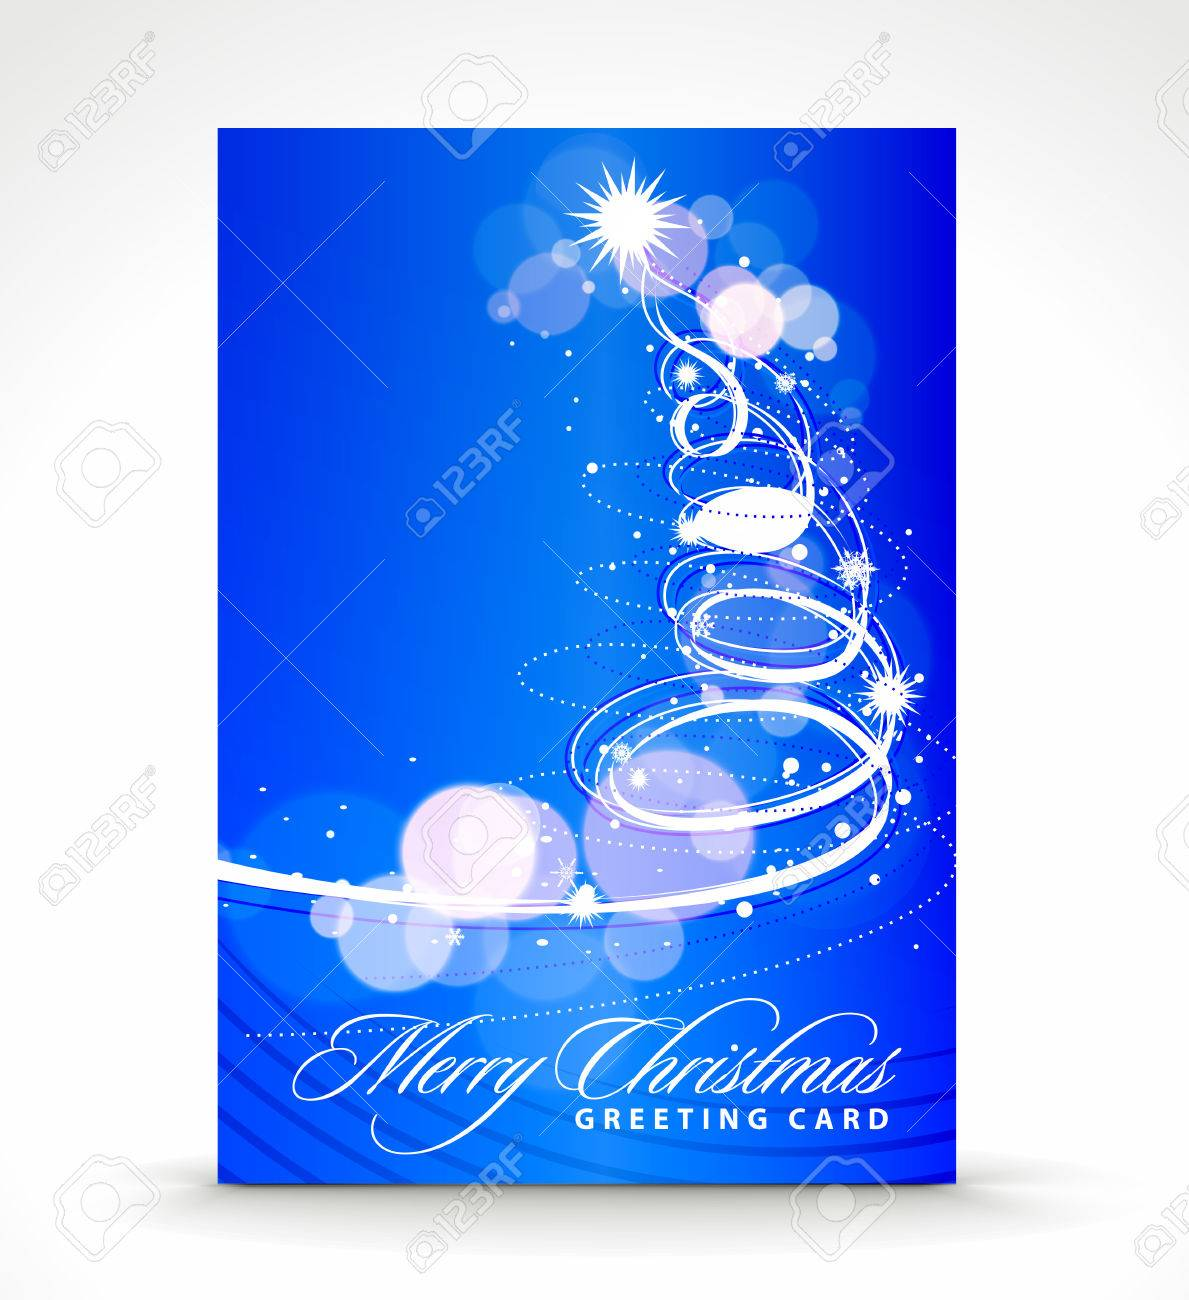 Christmas greeting card with presentation design. Stock Vector - 8238261